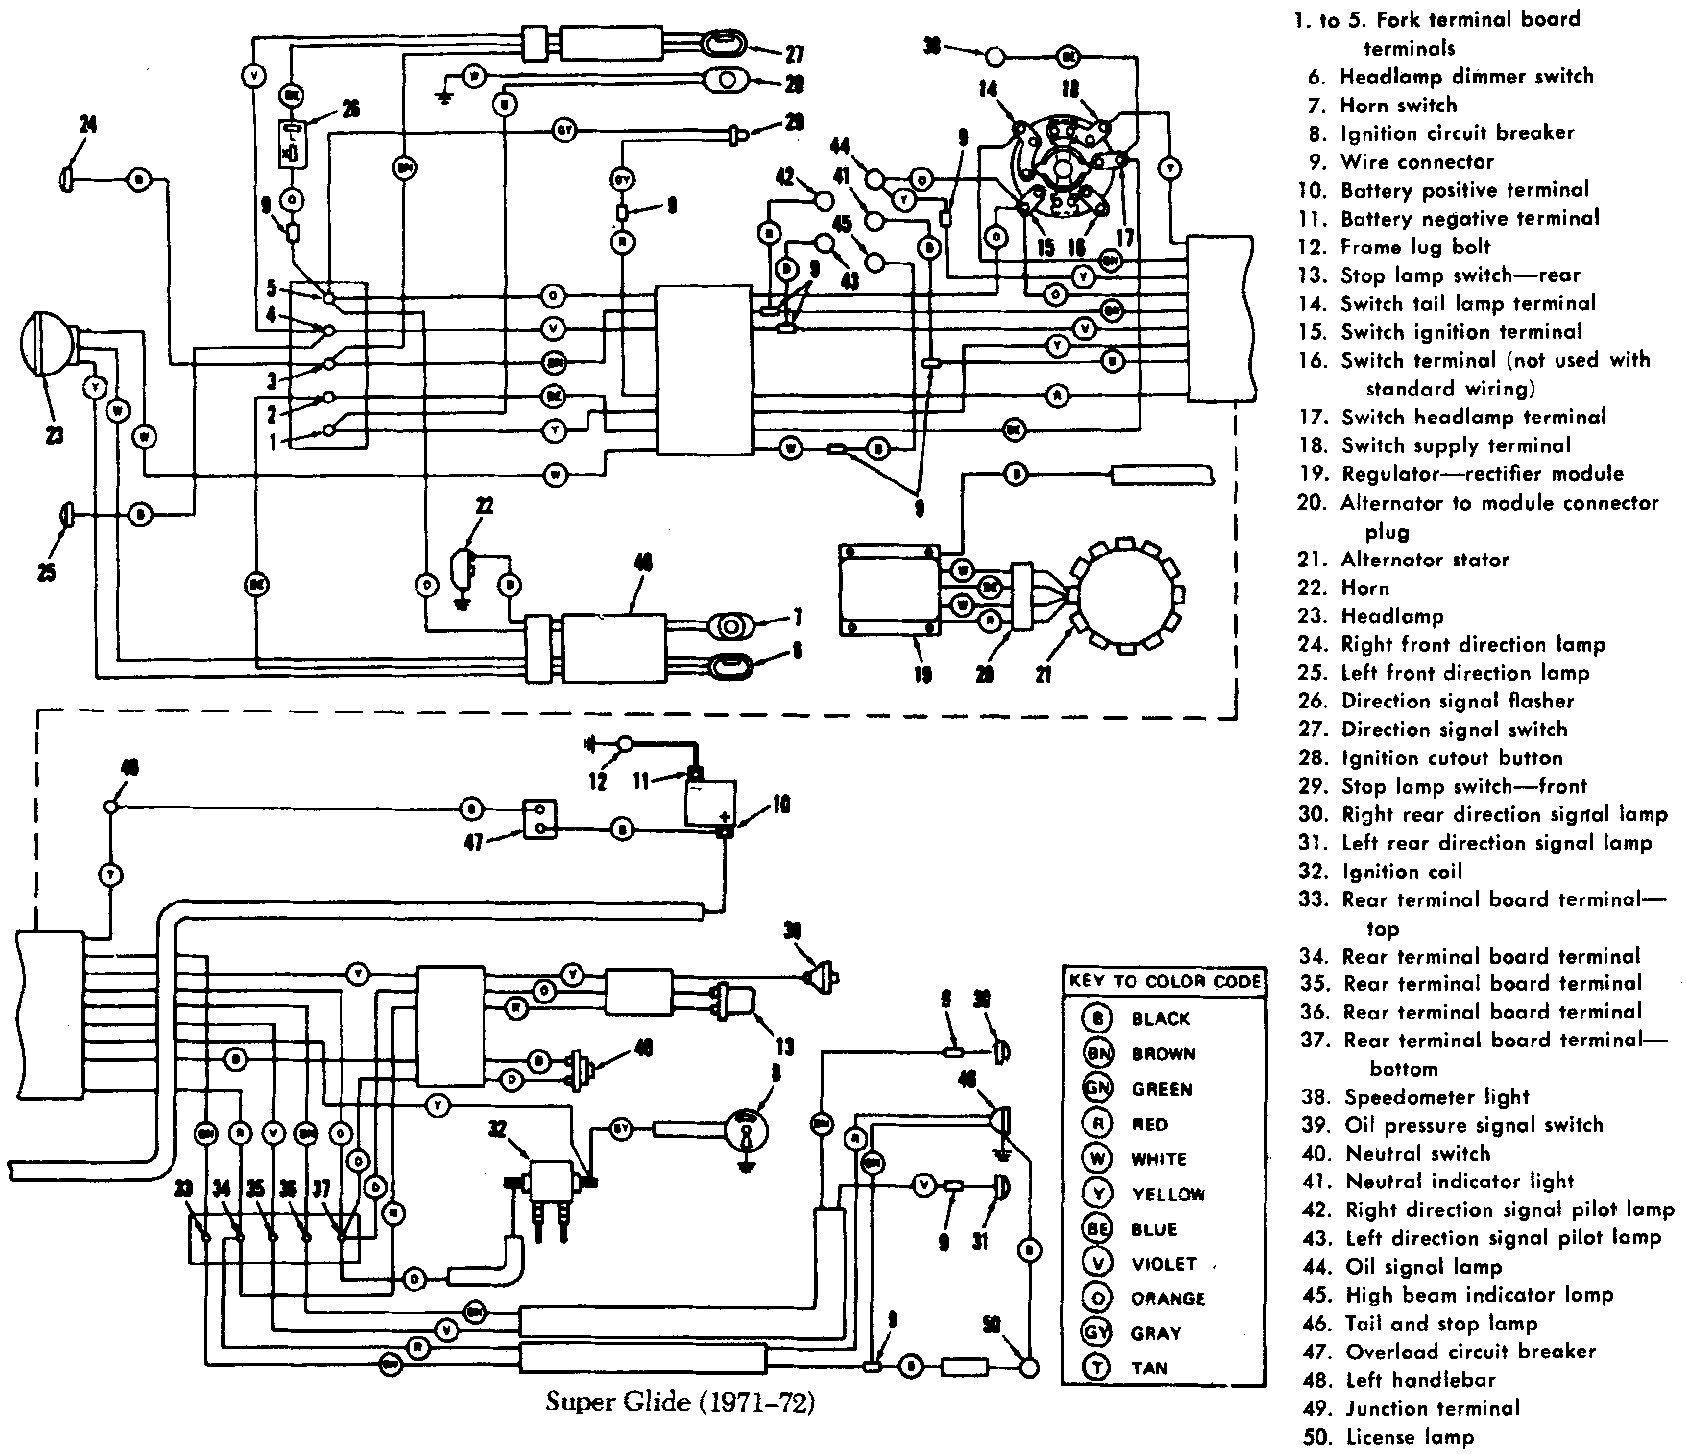 Harley Flh Wire Diagram - Bookmark About Wiring Diagram on